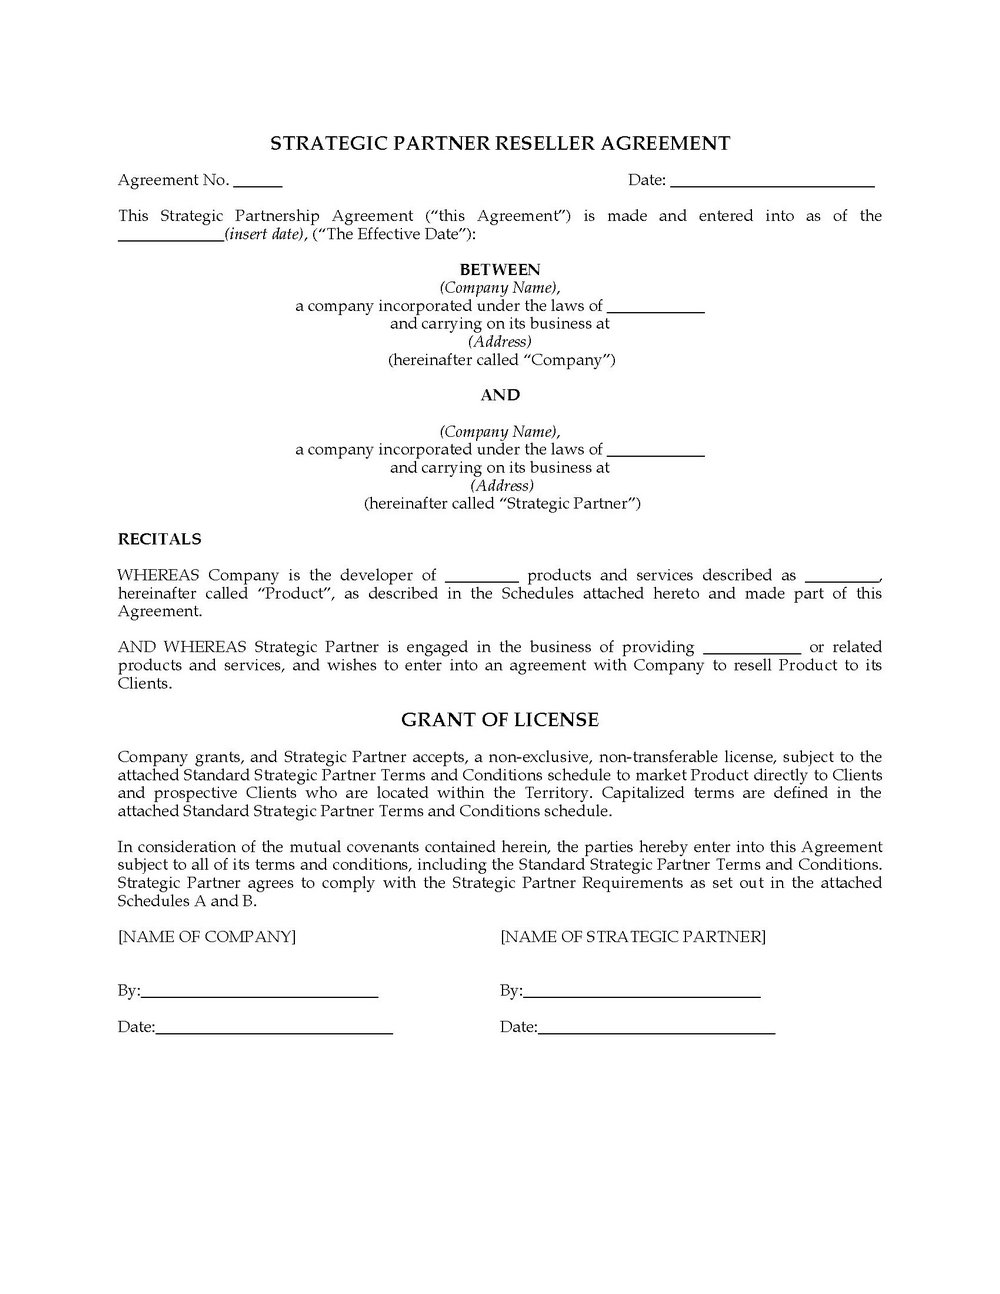 Reseller Agreement Template South Africa